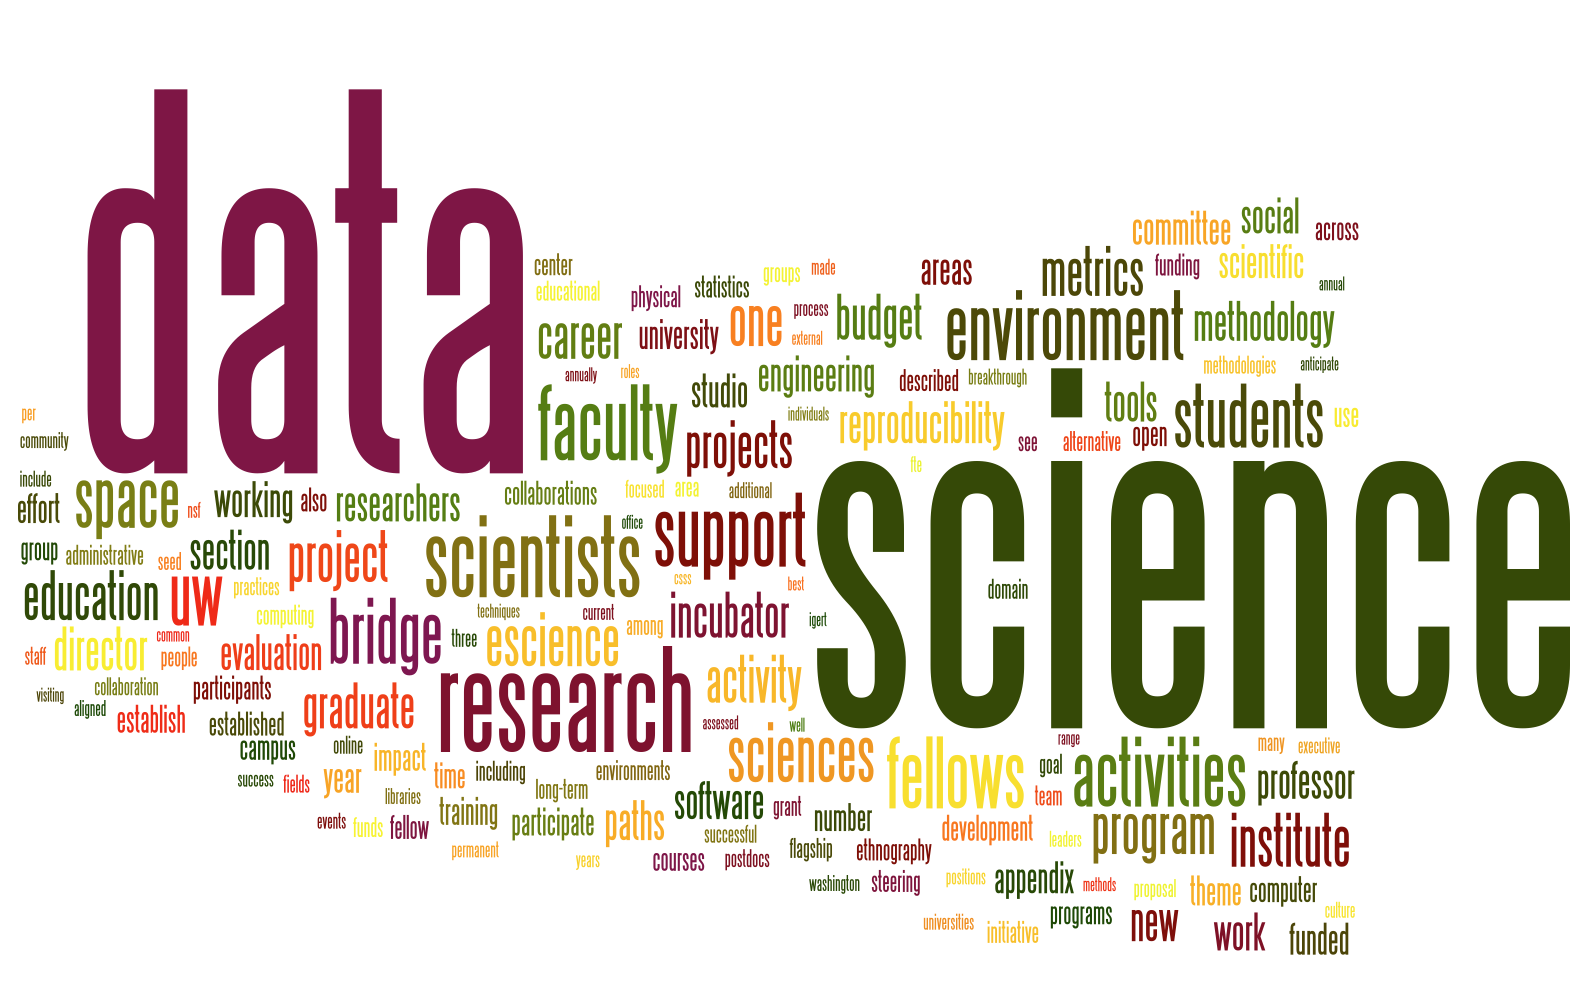 Blending Creativity with Data Sciences